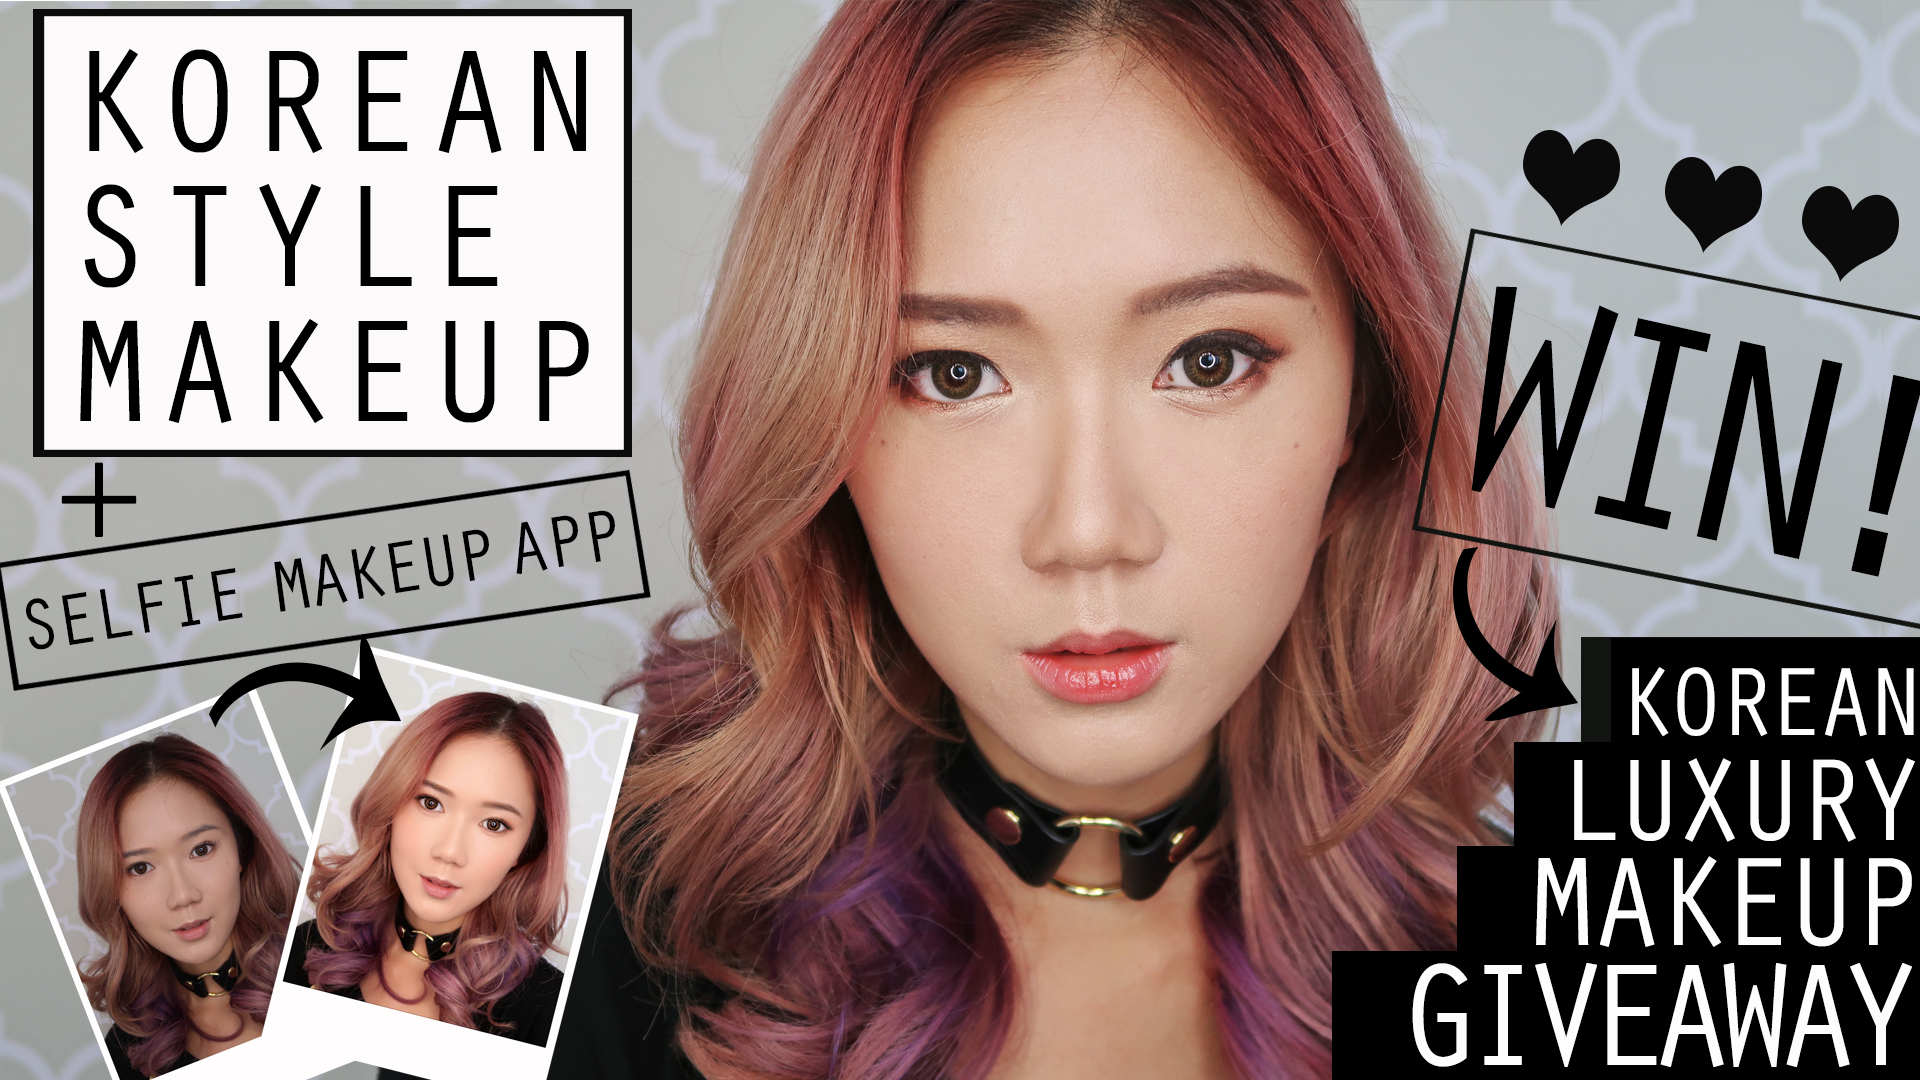 VLOG: Korean Style Makeup Tutorial + K-Beauty Makeup Giveaway From Seoul